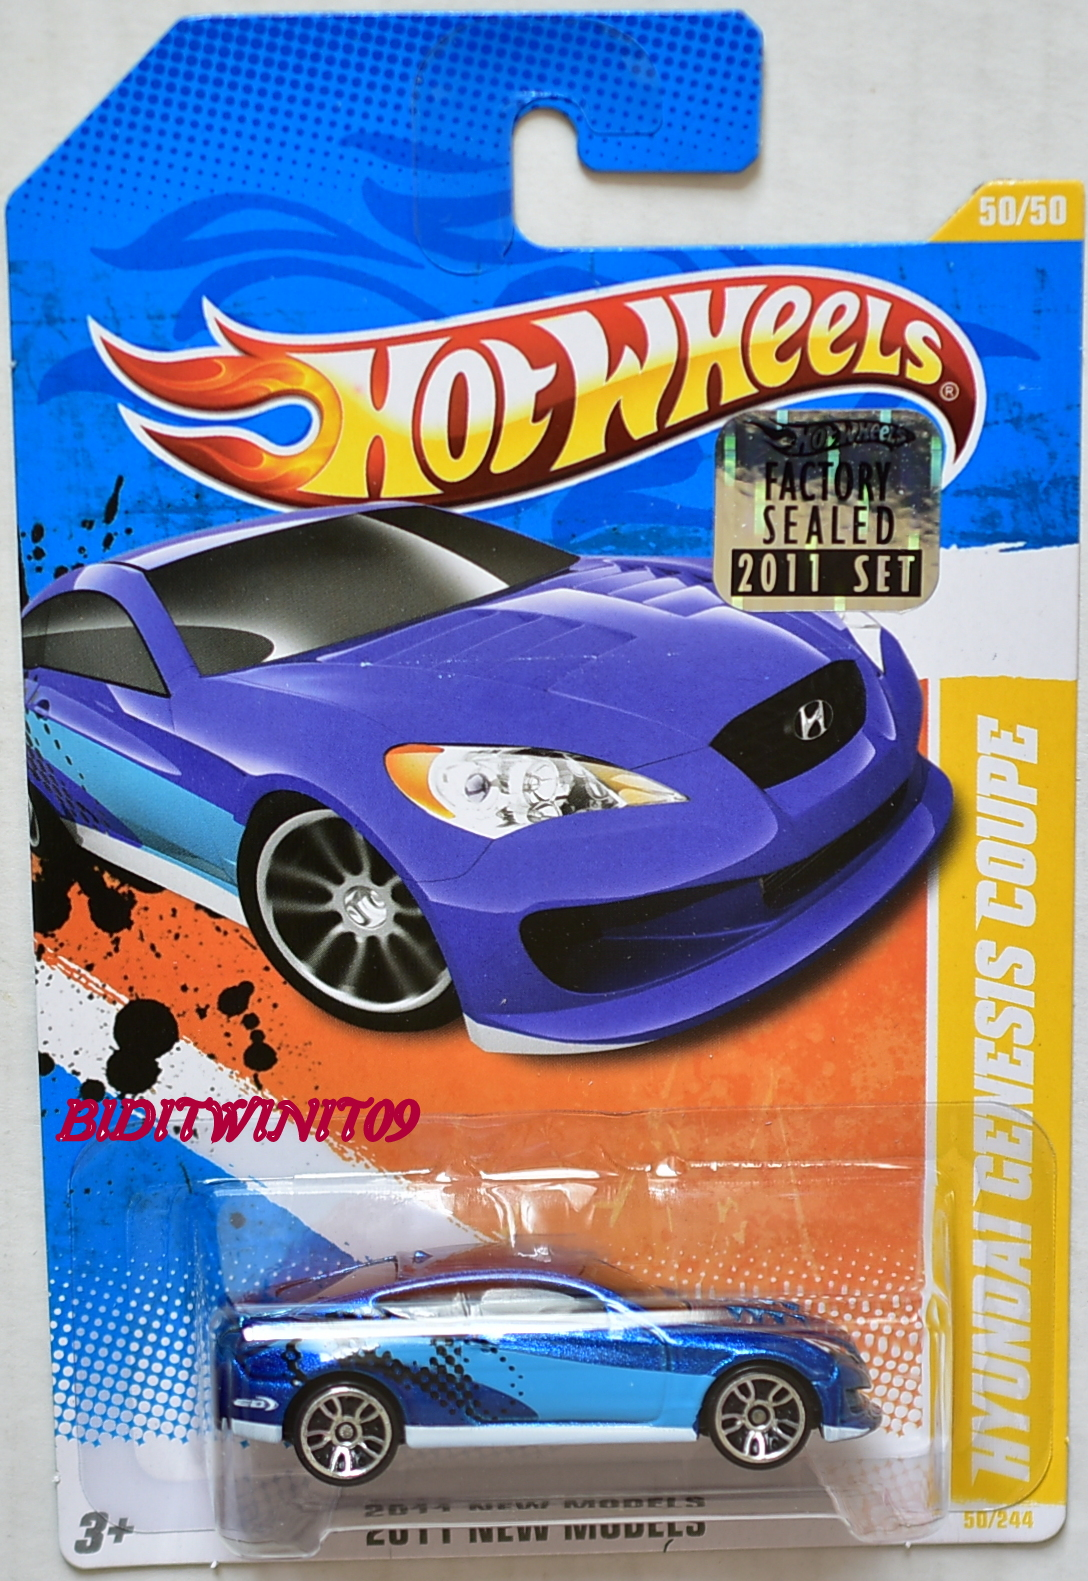 HOT WHEELS 2011 NEW MODELS HYUNDAI GENESIS COUPE BLUE FACTORY SEALED